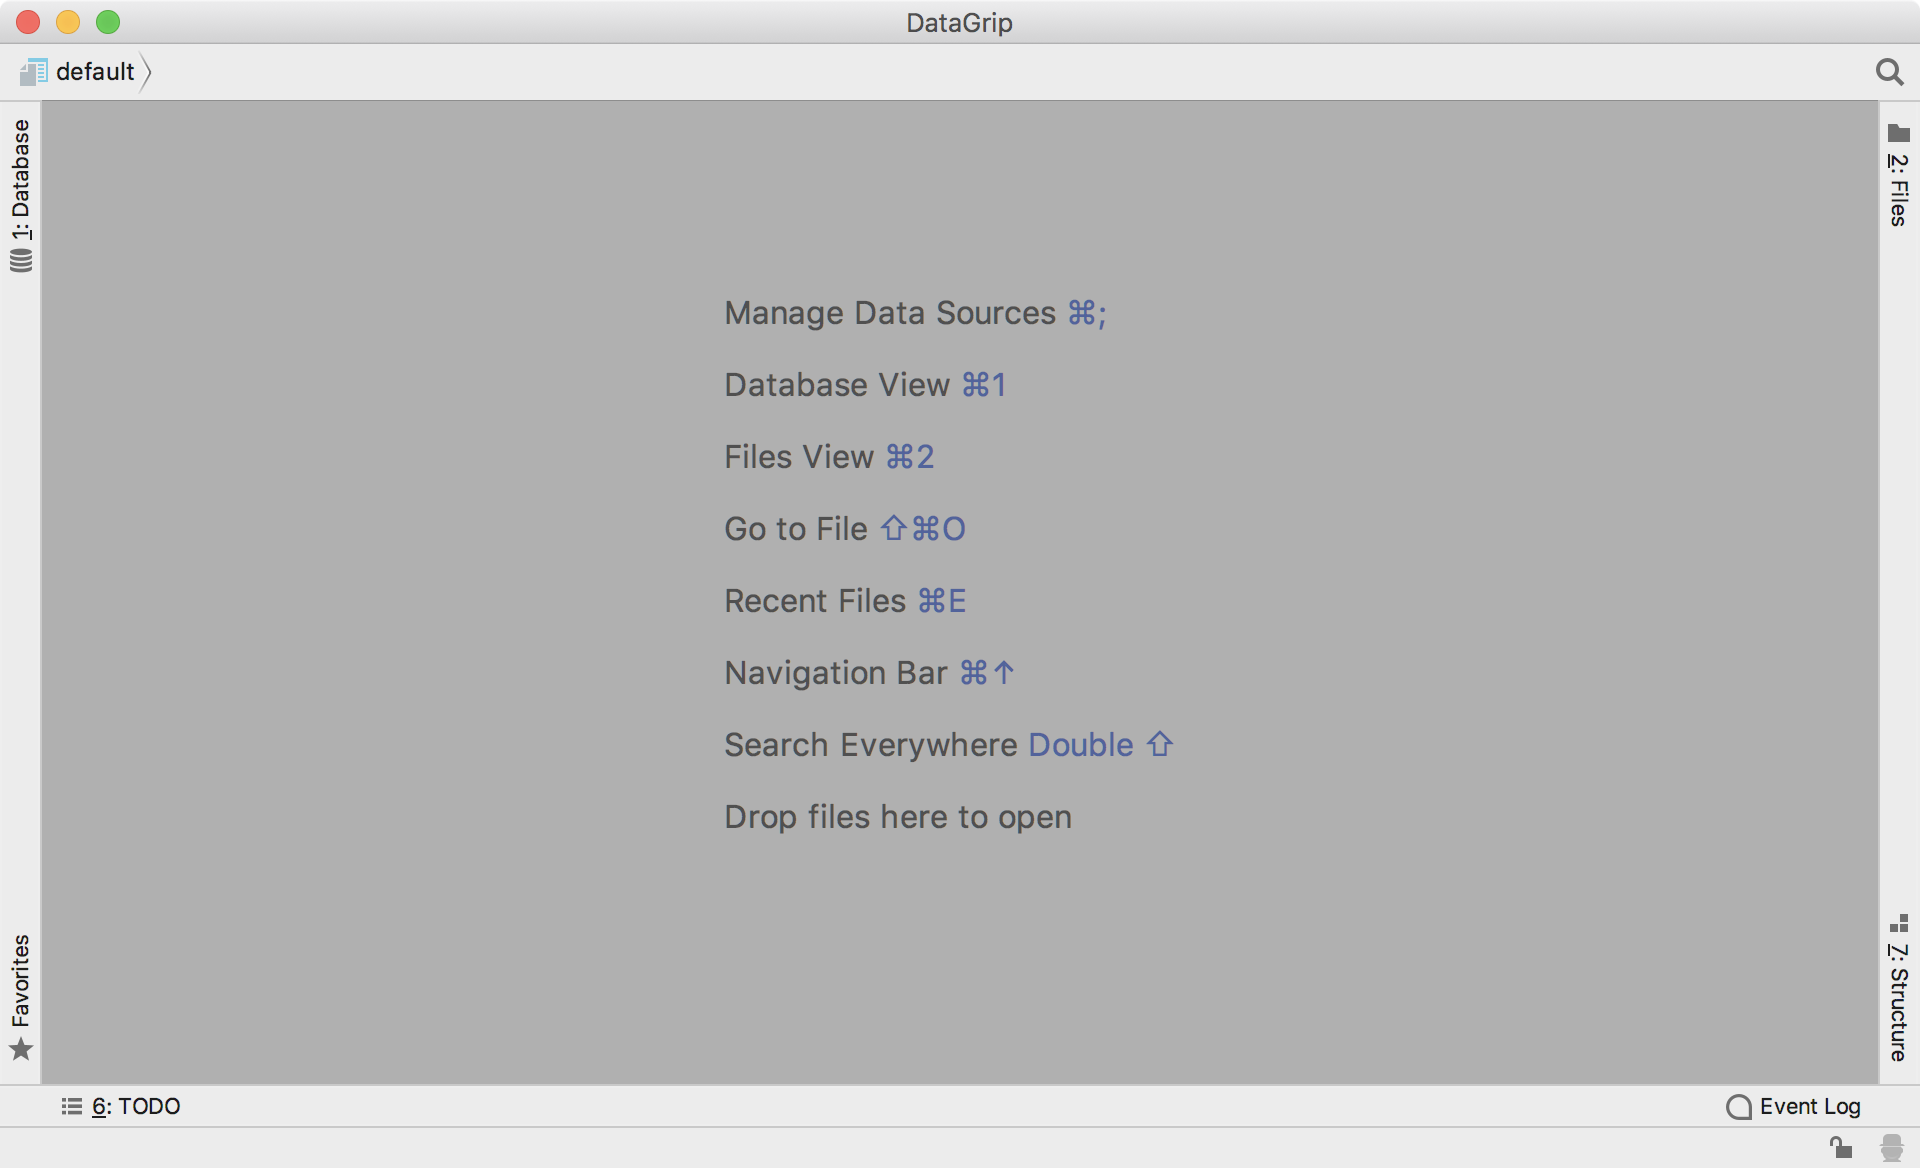 Use CrateDB With DataGrip, an Advanced Database IDE - CrateDB